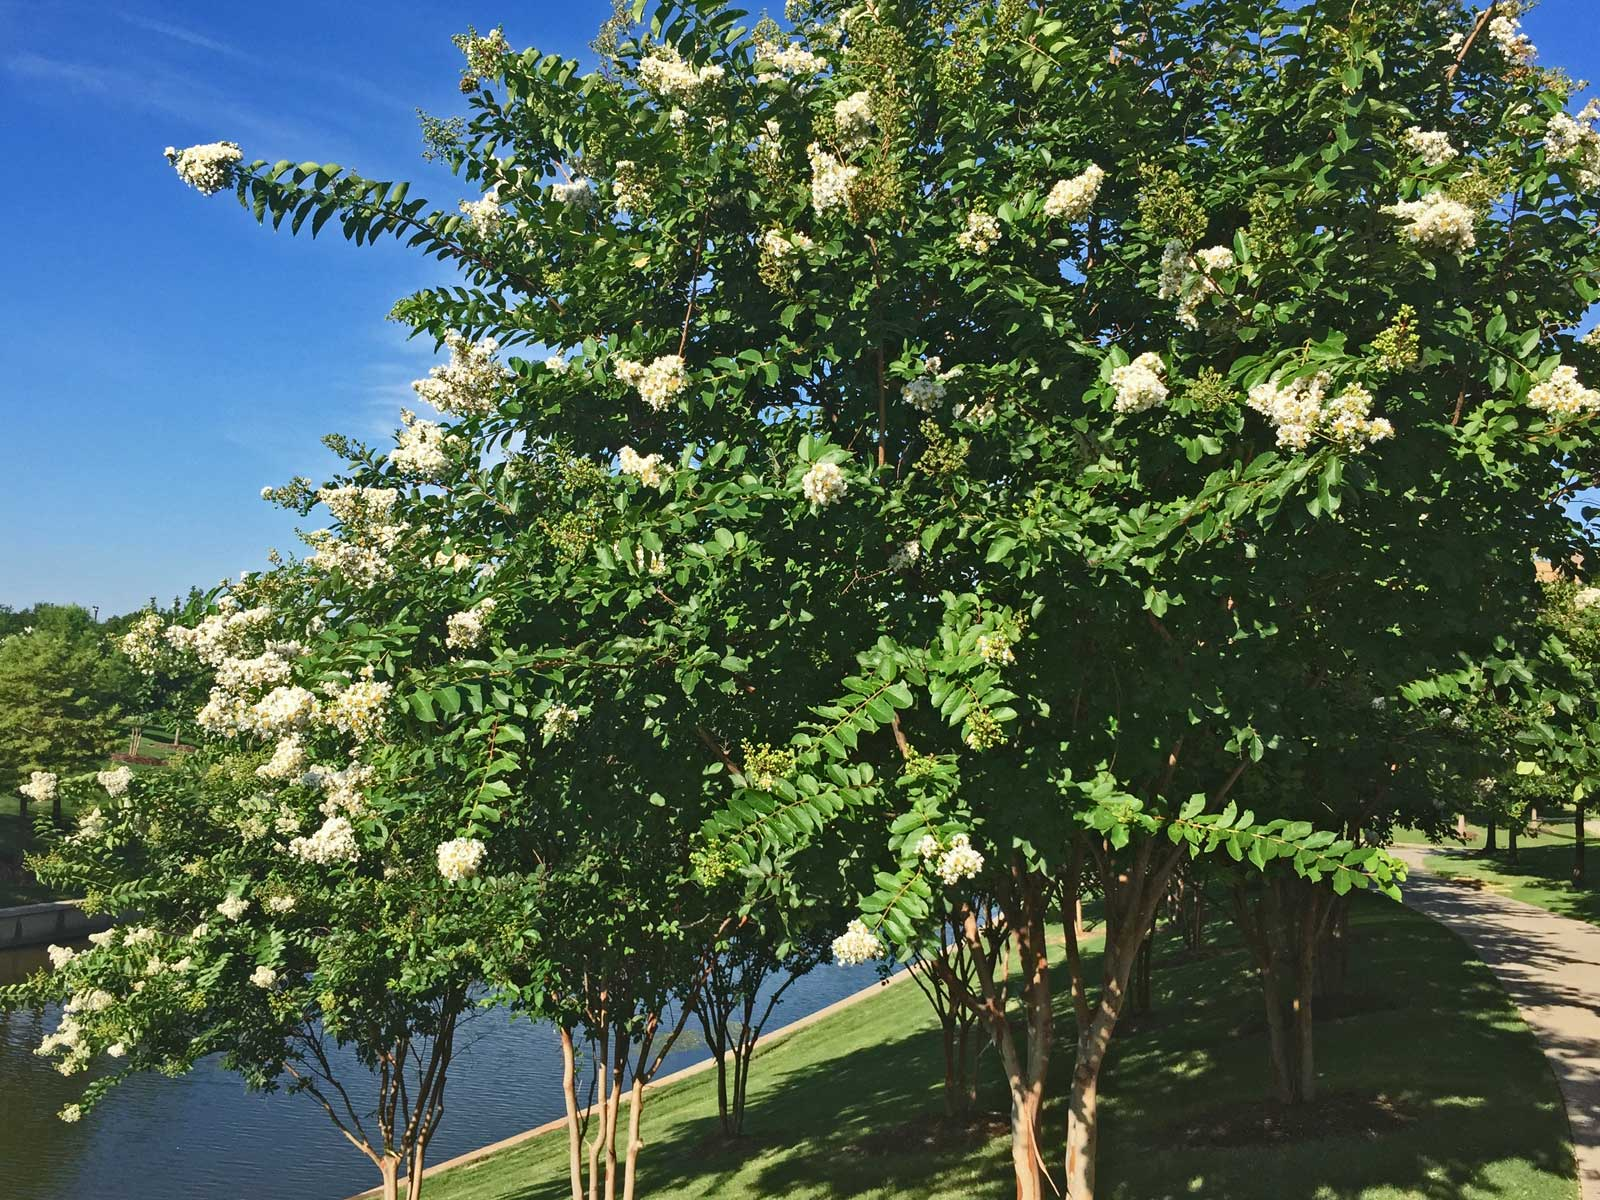 A grouping of 'Natchez' Crape Myrtles along the lakes at Vitruvian Park in Addison.